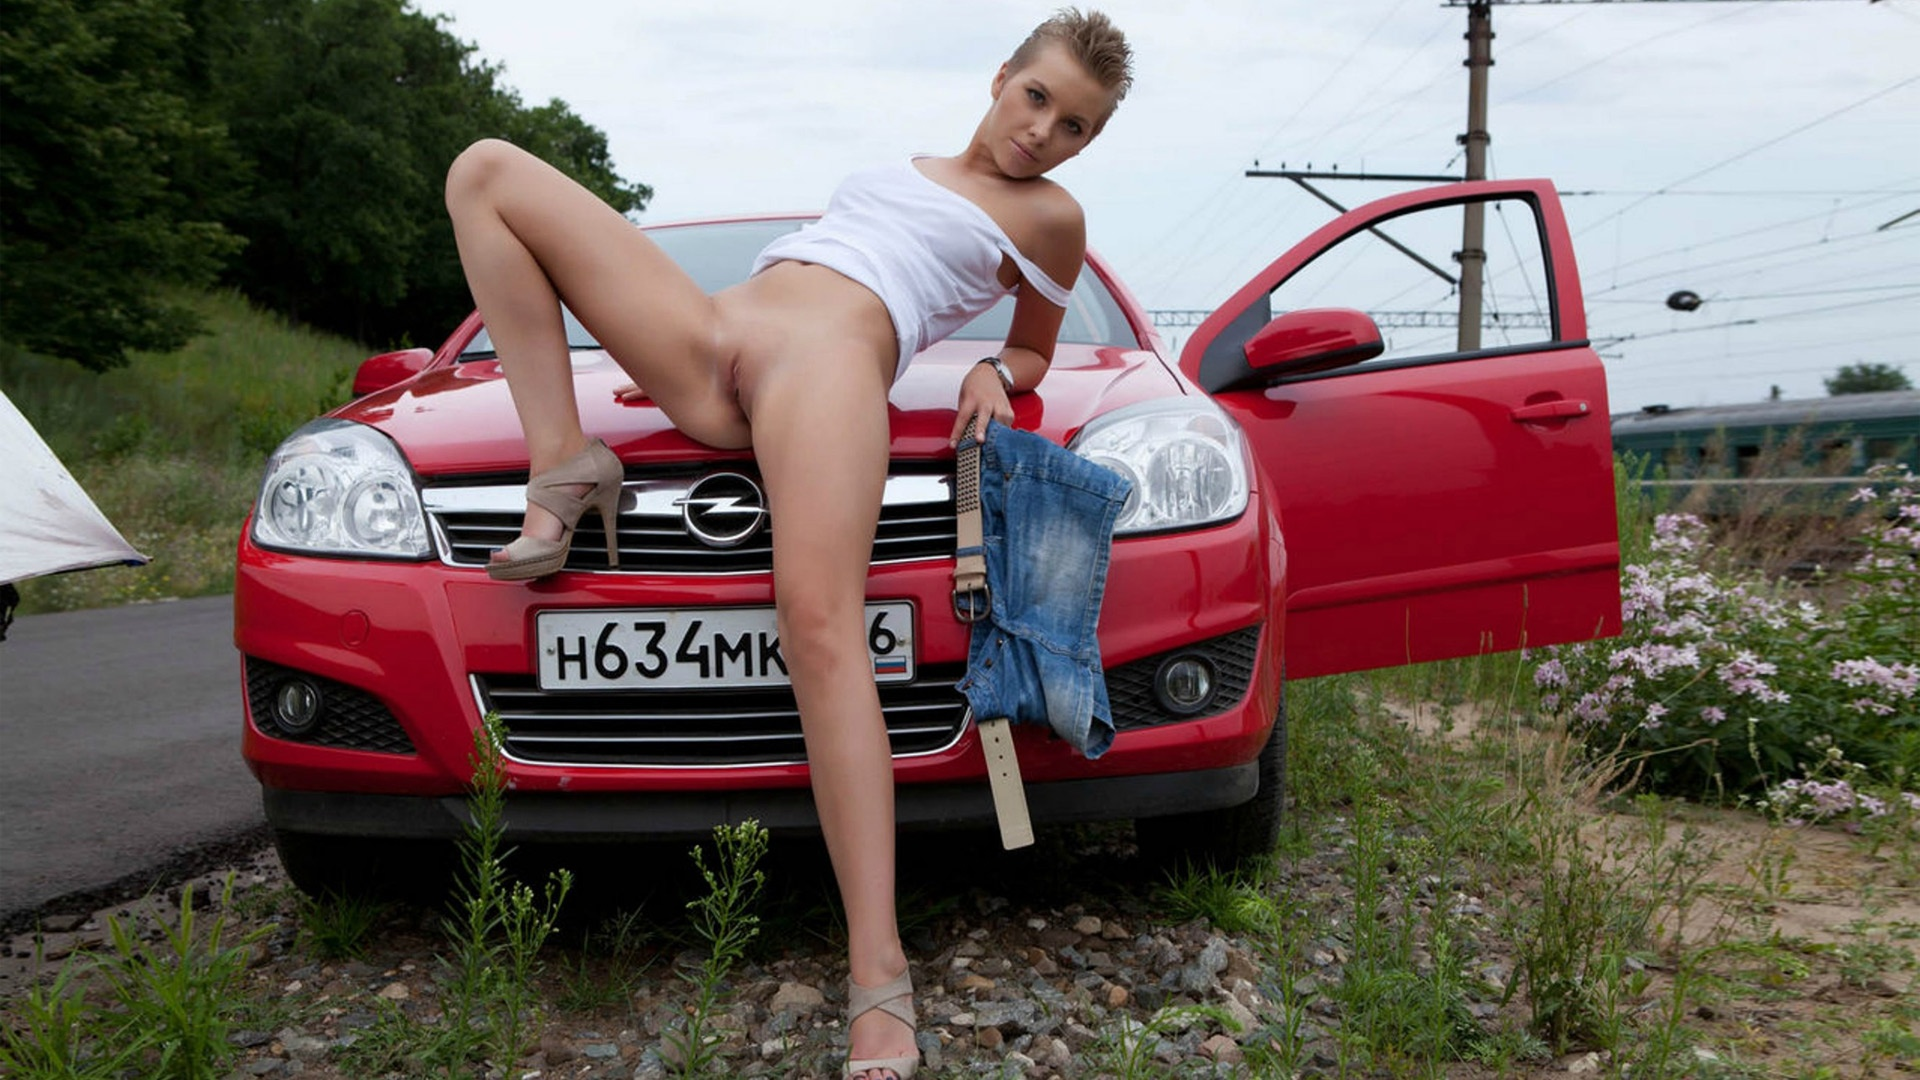 Hd girls nude naked cars phrase